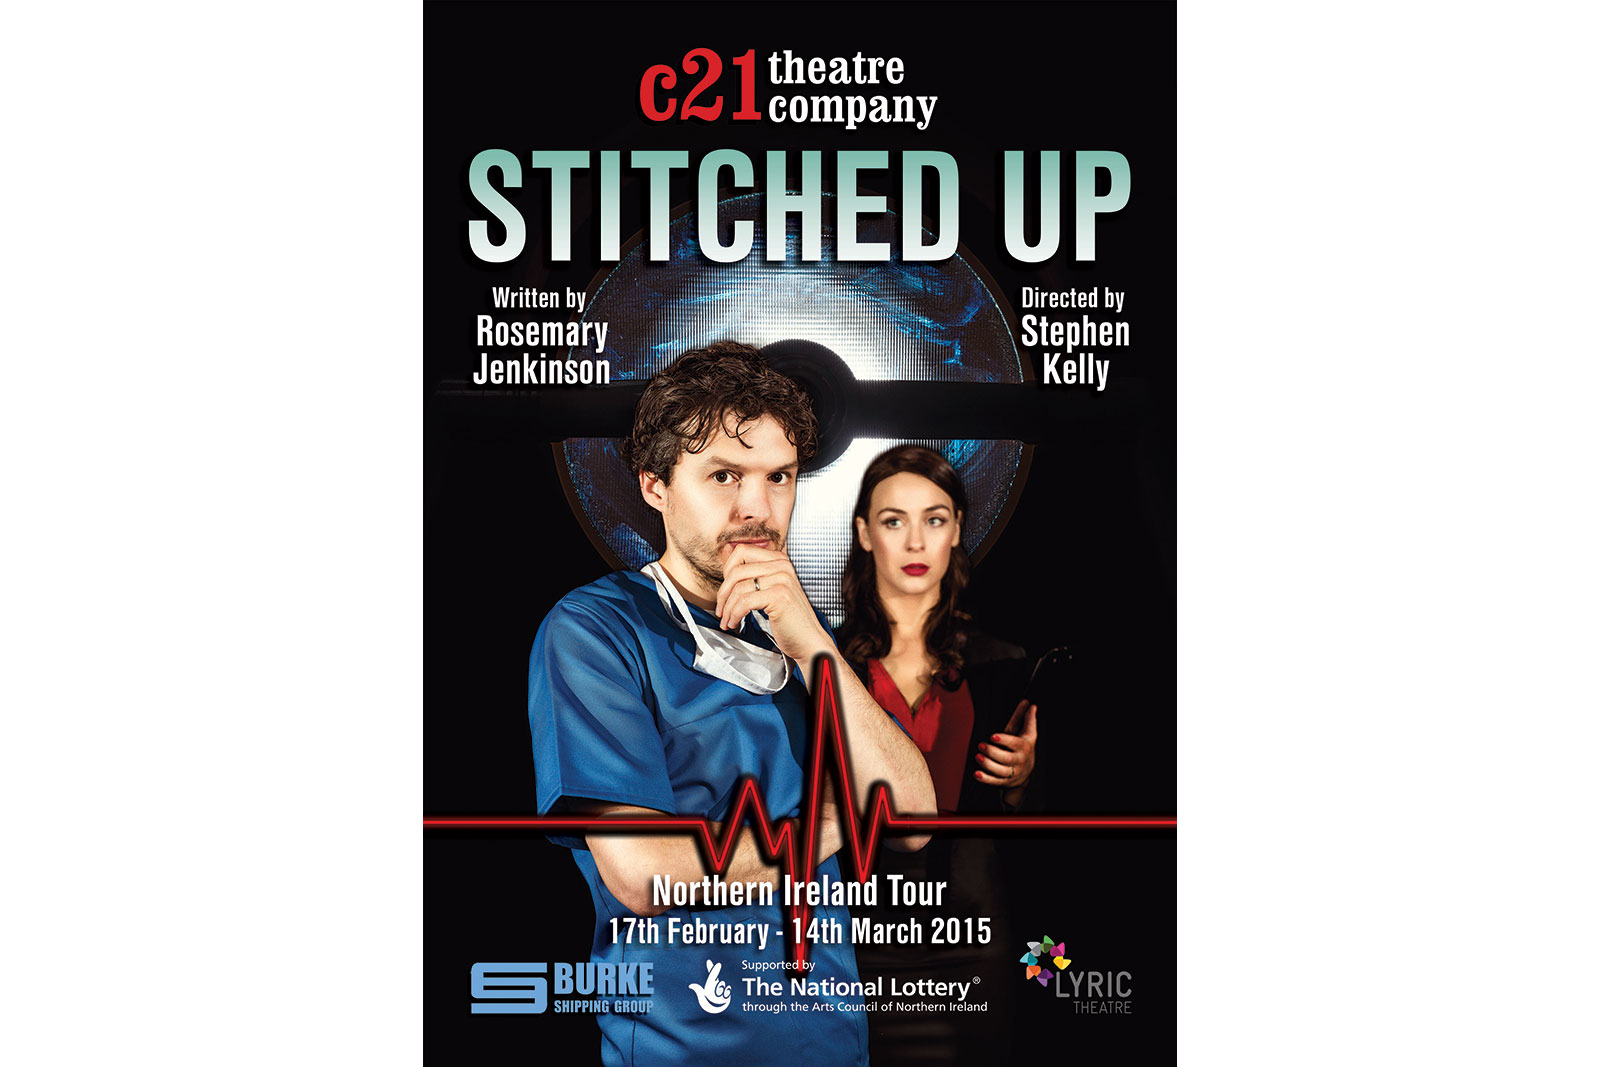 c21 Theatre Company Stitched Up